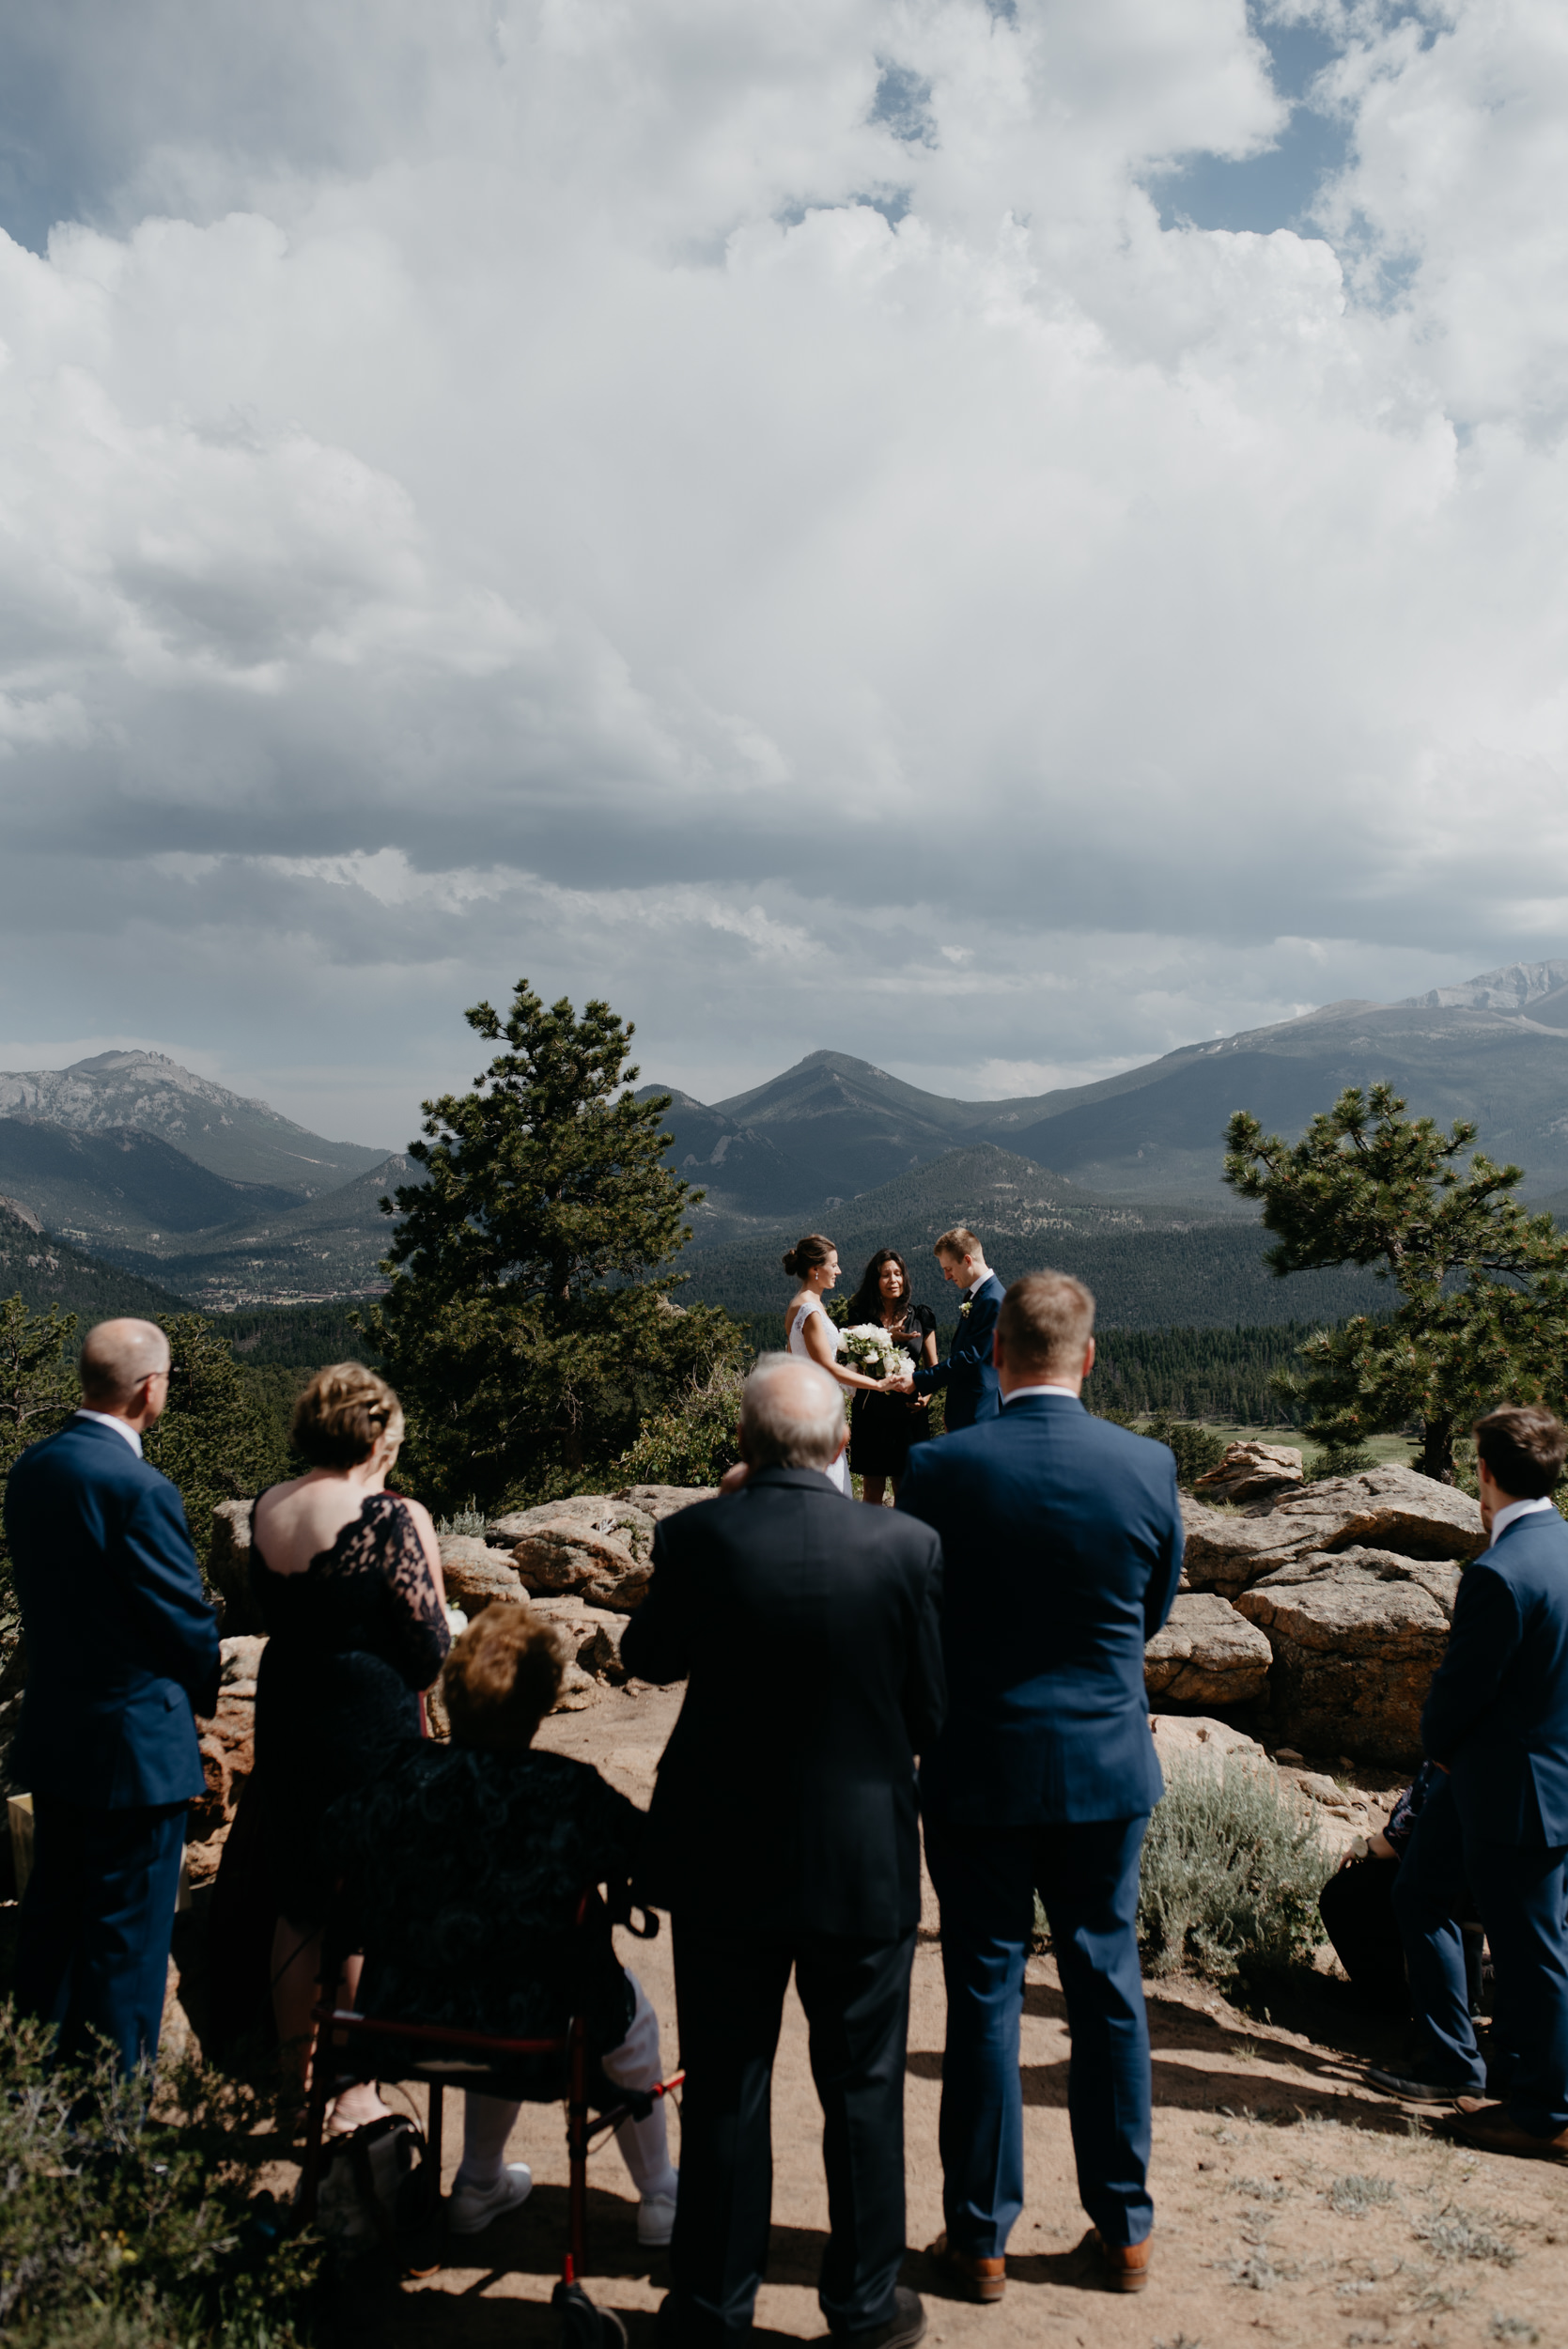 3M Curve wedding ceremony. Rocky Mountain National Park elopement. Colorado wedding and elopement photographer.